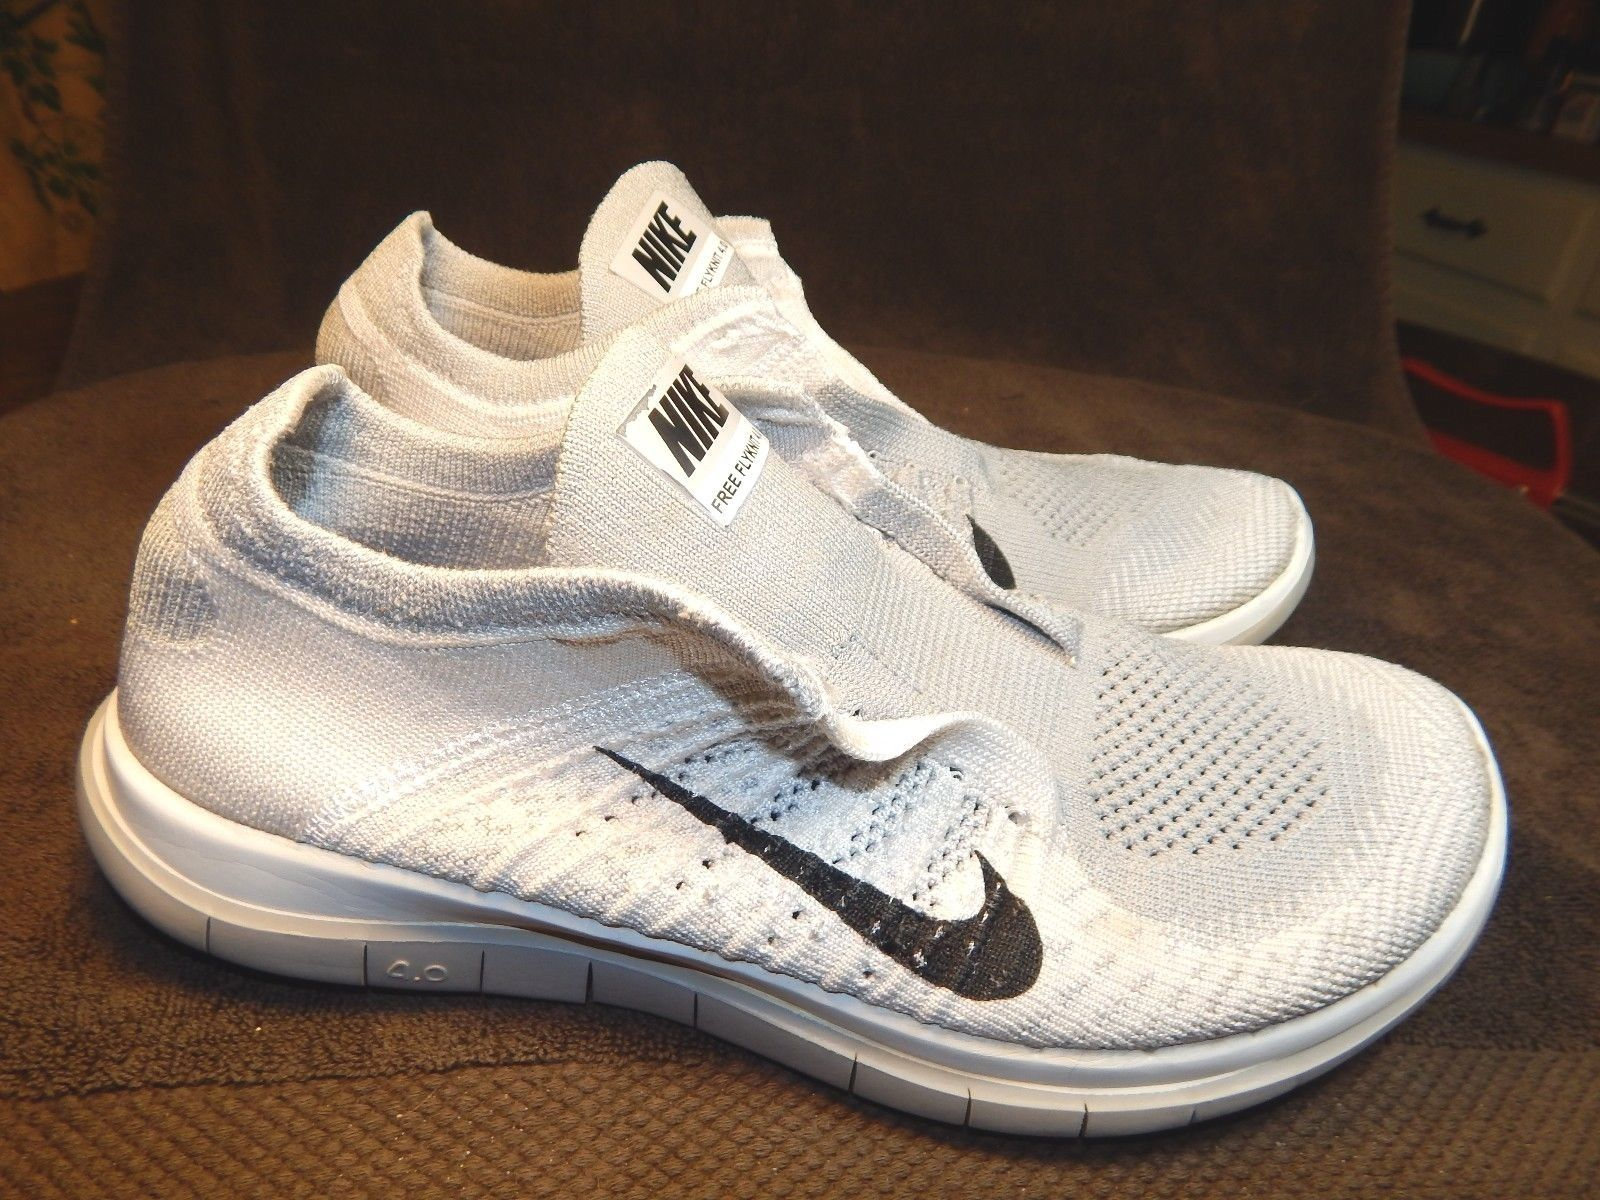 "WOMEN'S NIKE ""FREE FLYKNIT 4.0"" LACE-LESS SLIP-ON ATHLETIC SNEAKERS-SZ 9 M-GRA https://t.co/5qJUPAoFot https://t.co/eGNG5Ow2Cd"